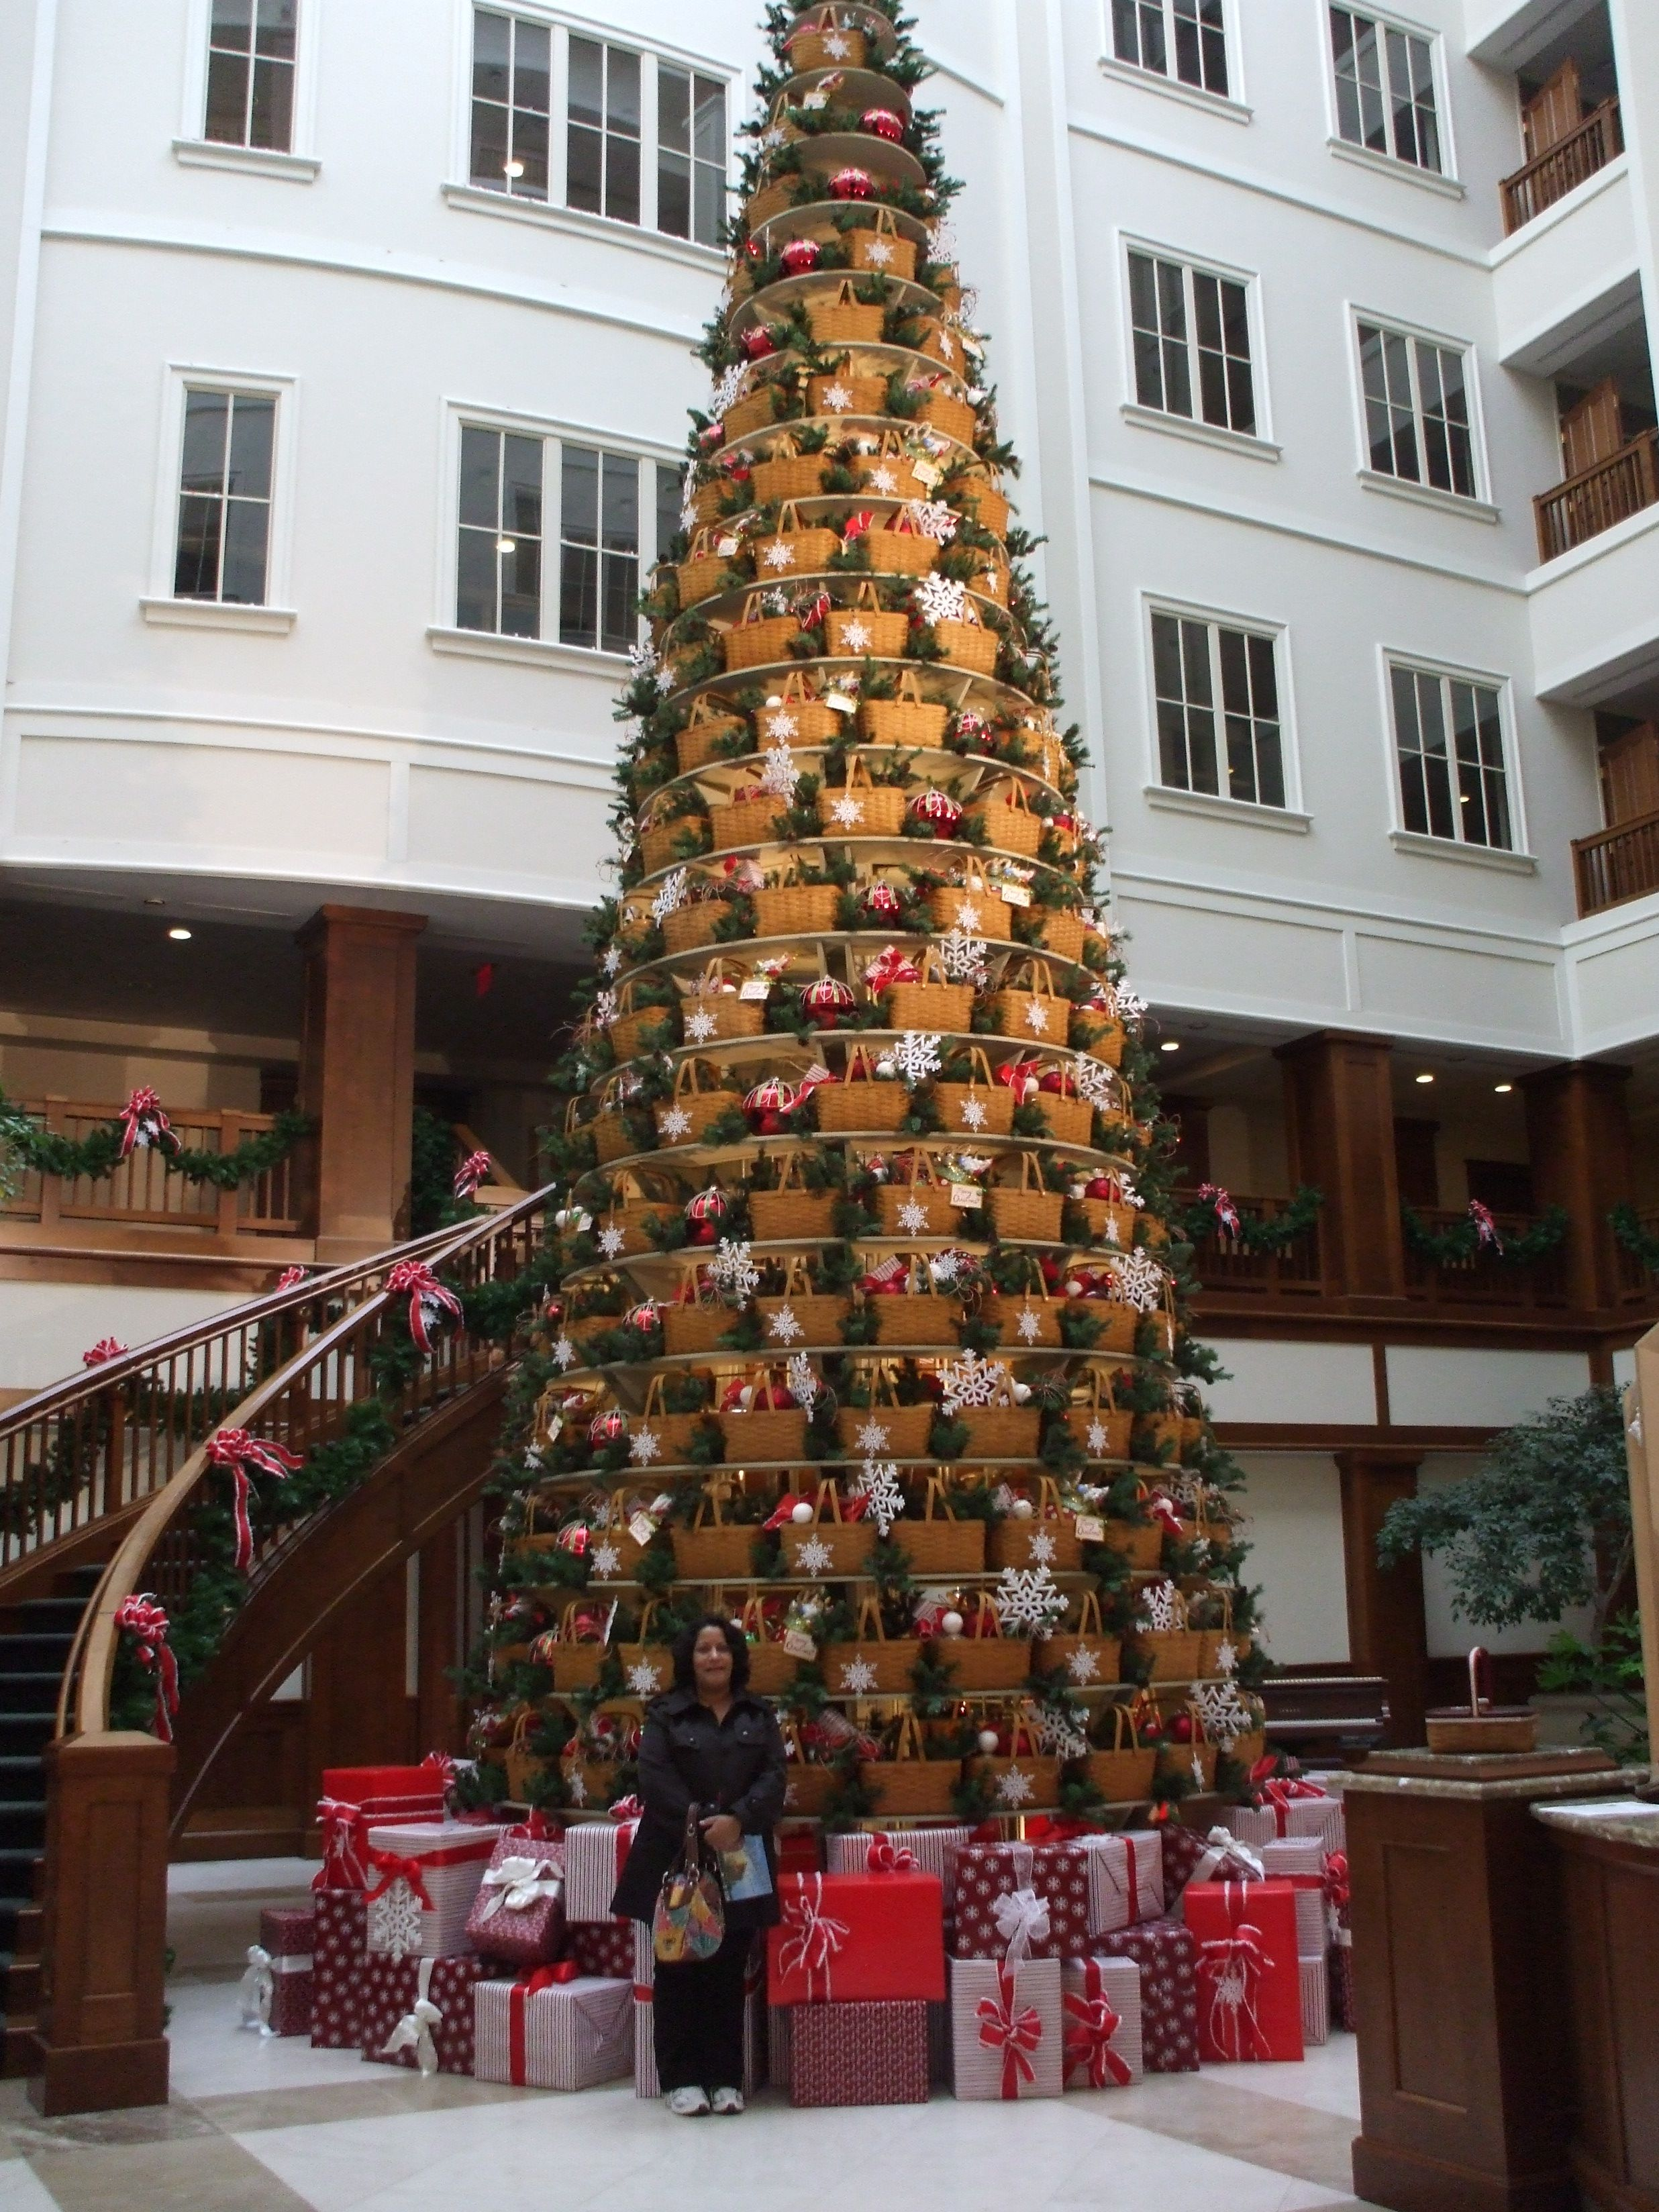 2019 Longaberger Christmas Basket Longaberger Home office lobby in Newark, Ohio at Christmas time